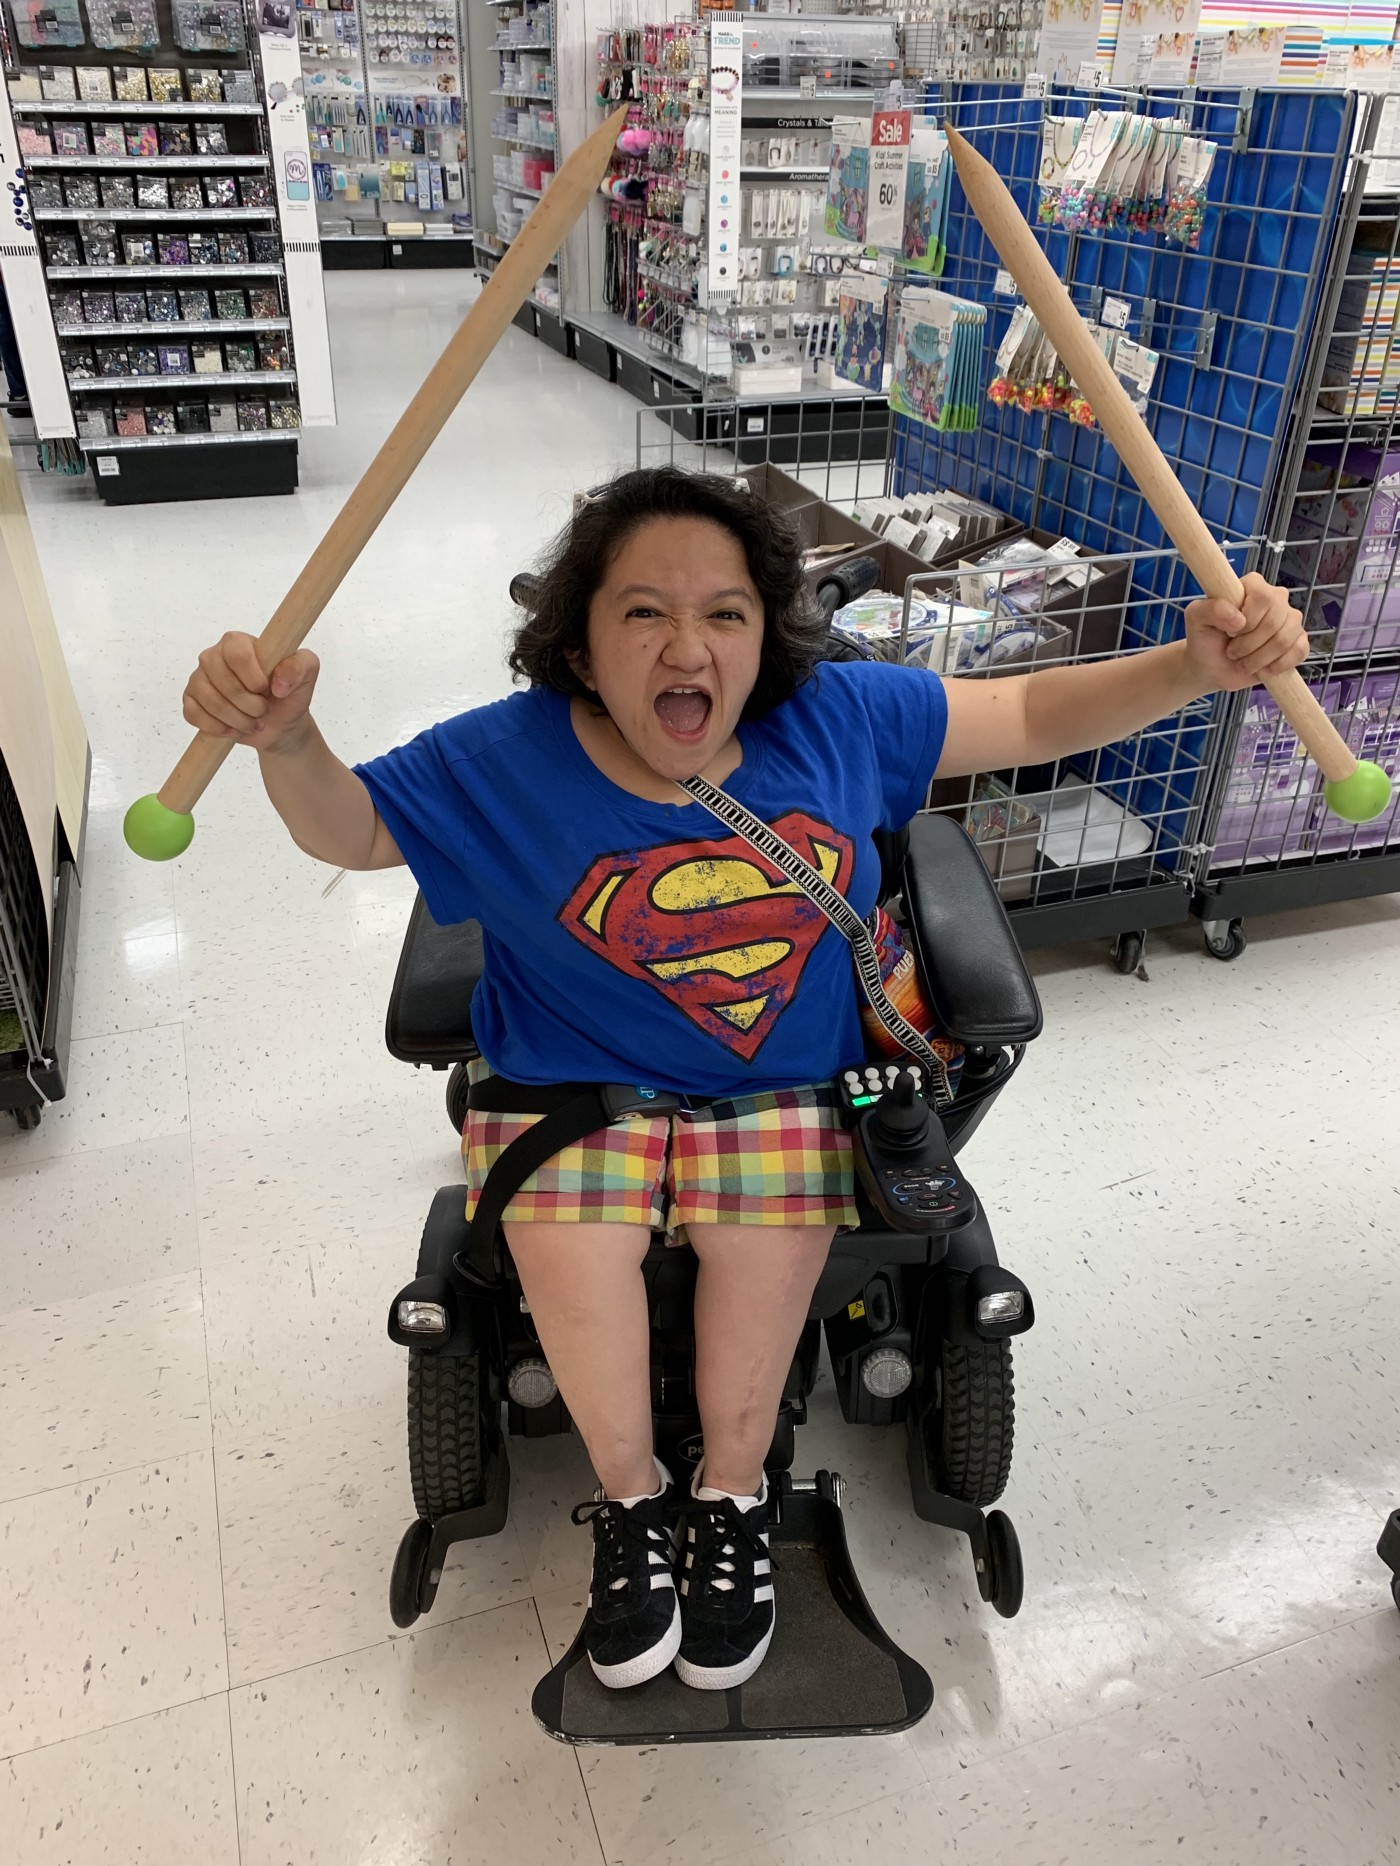 Sandy Ho, an Asian American woman with dark curly hair sits in a black power wheelchair. She is wearing a blue tshirt.